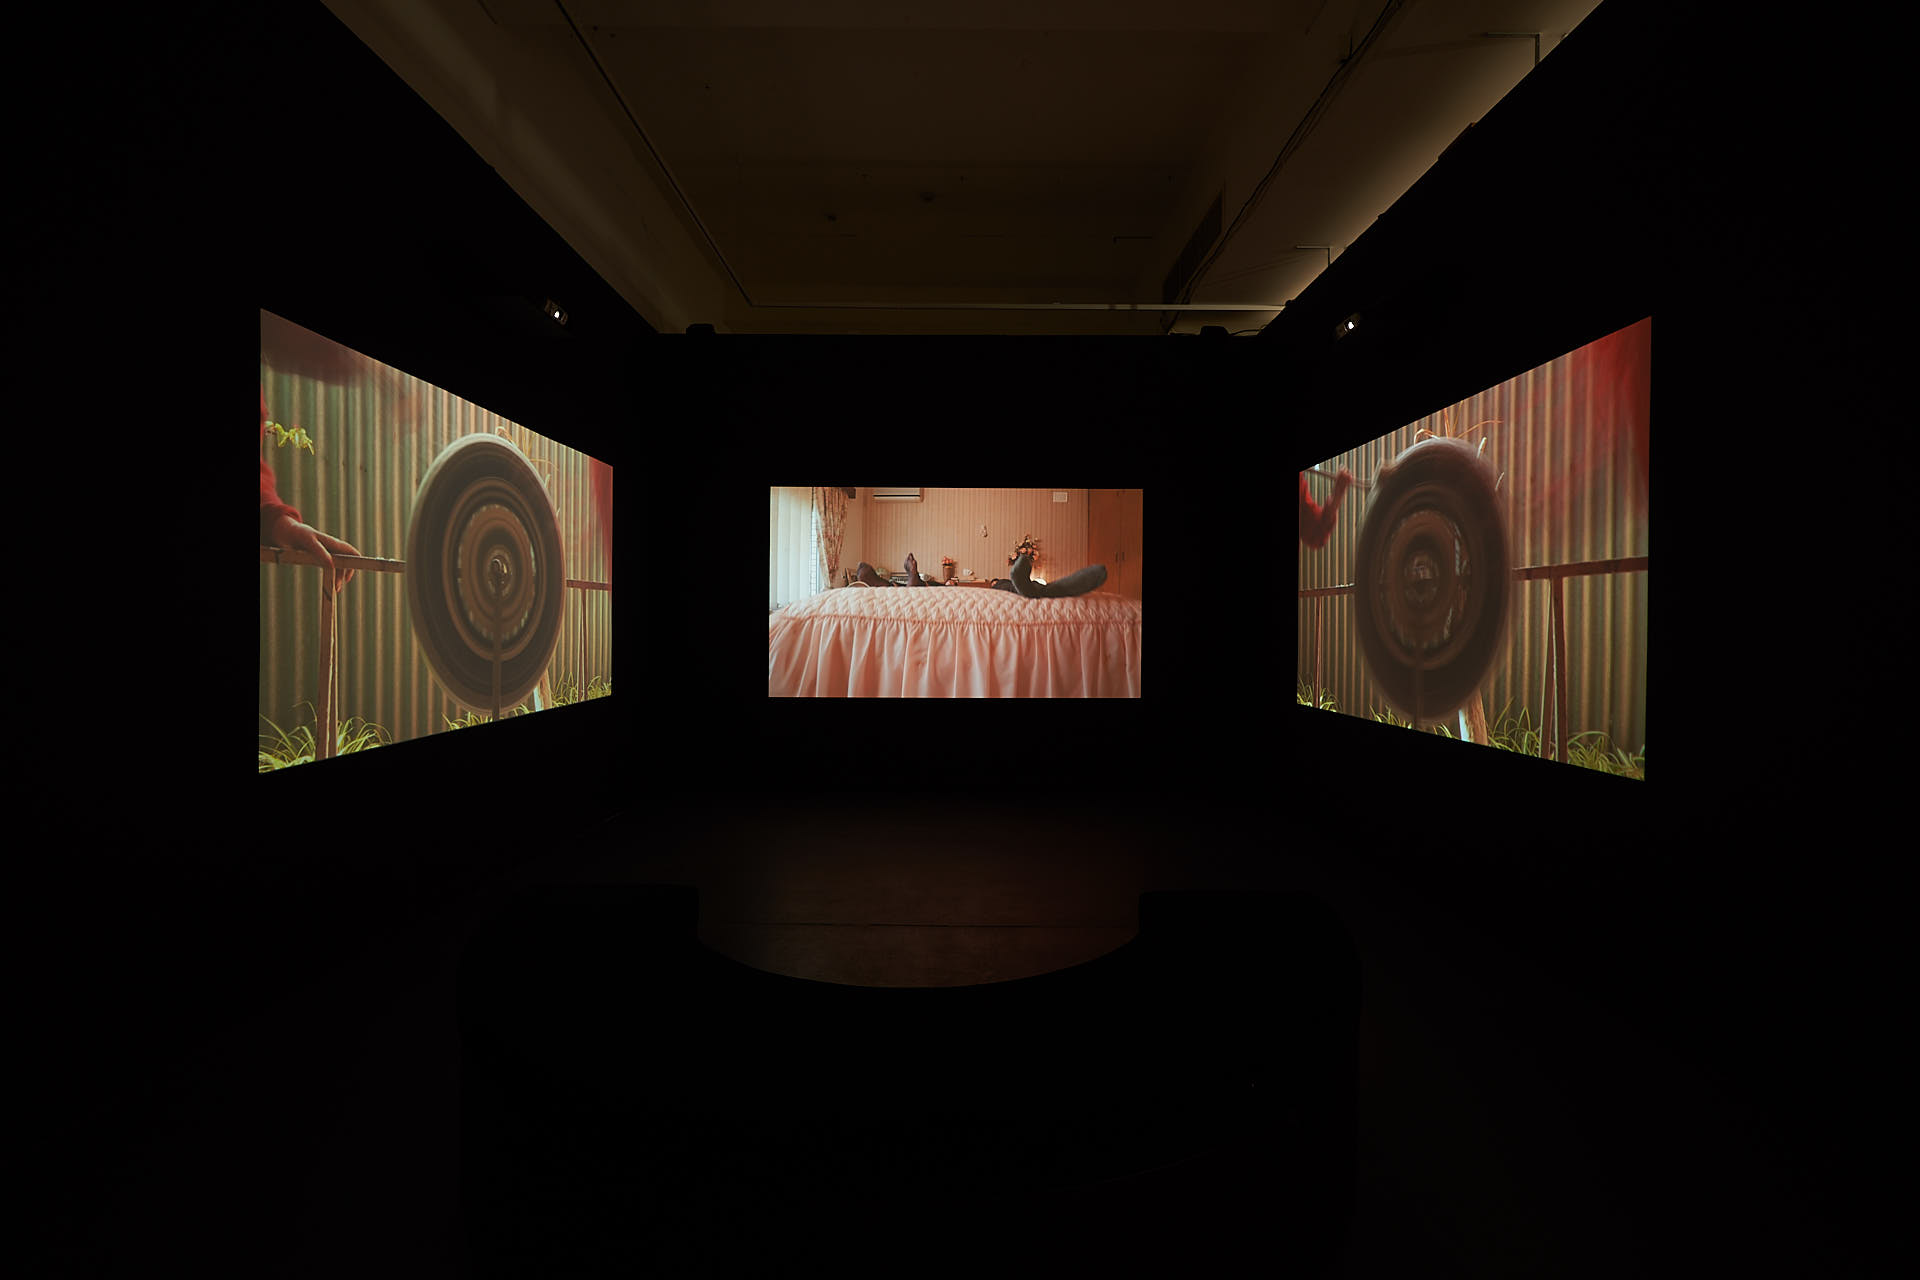 Video projected onto three screens in a black room